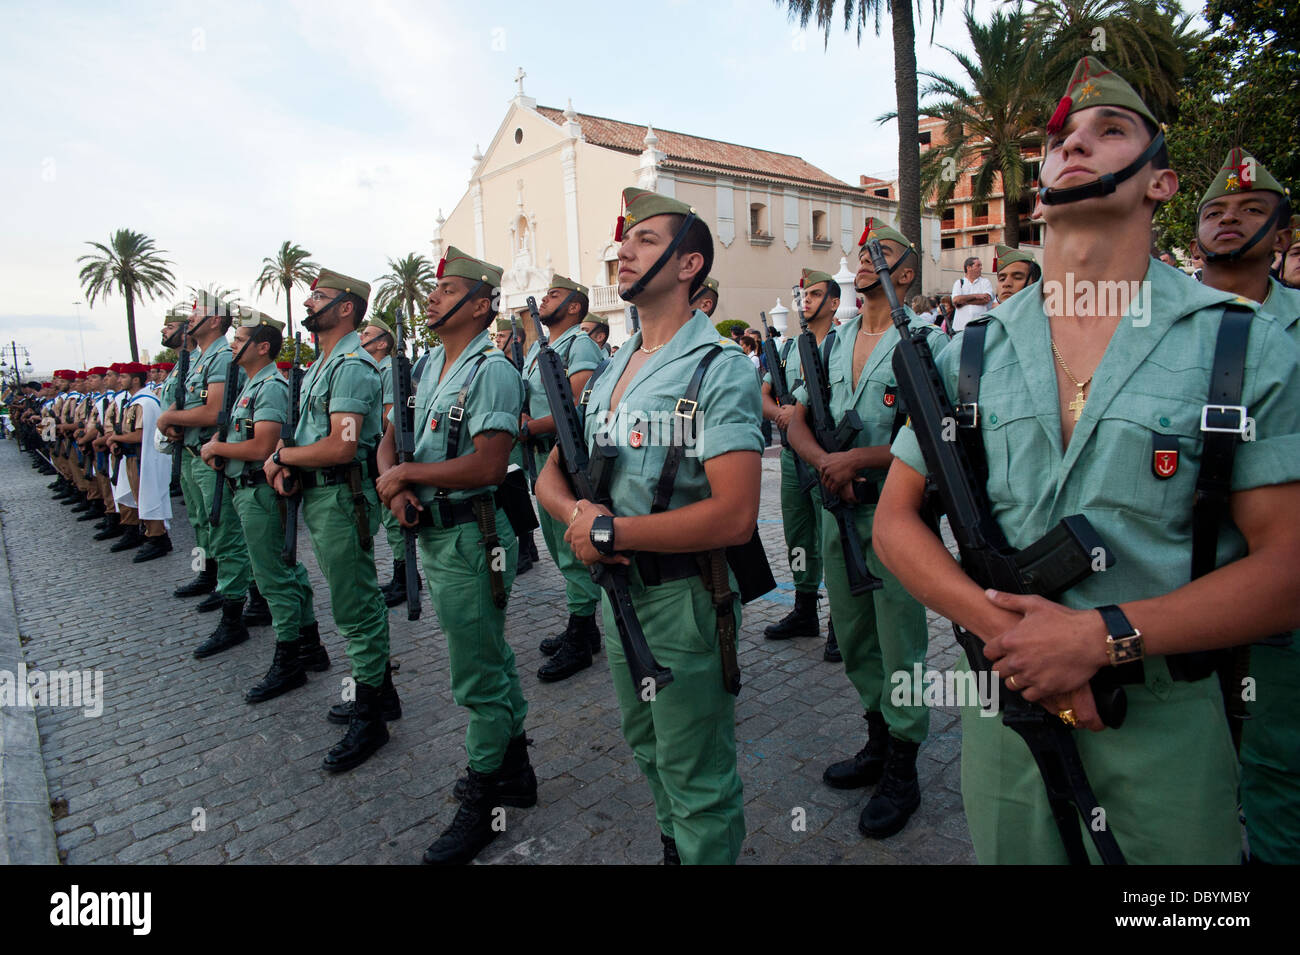 Legionary regiment in a military parade in Ceuta ( Spanish enclave on the North African coast) Spain. - Stock Image